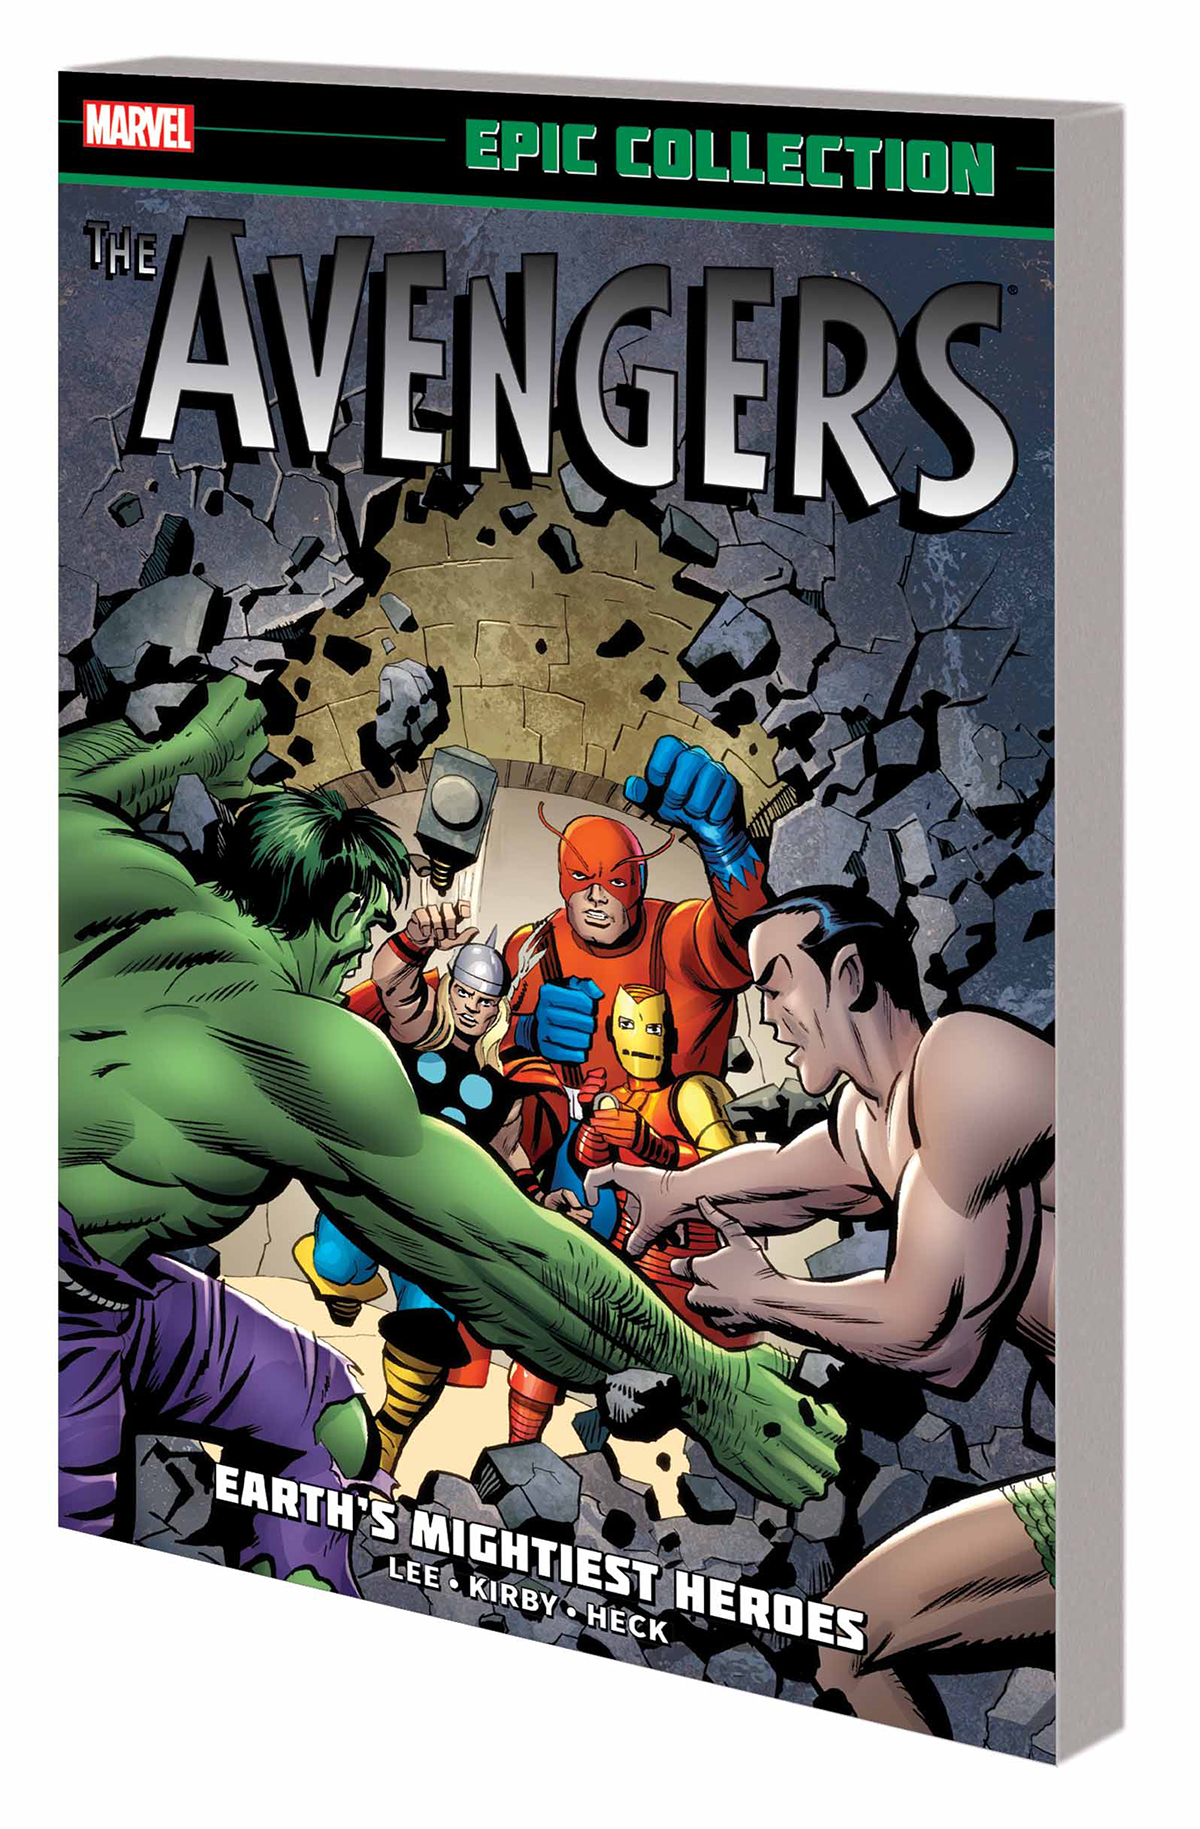 AVENGERS EPIC COLLECTION (01) TP EARTHS MIGHTIEST HEROES [1963 #1-20]